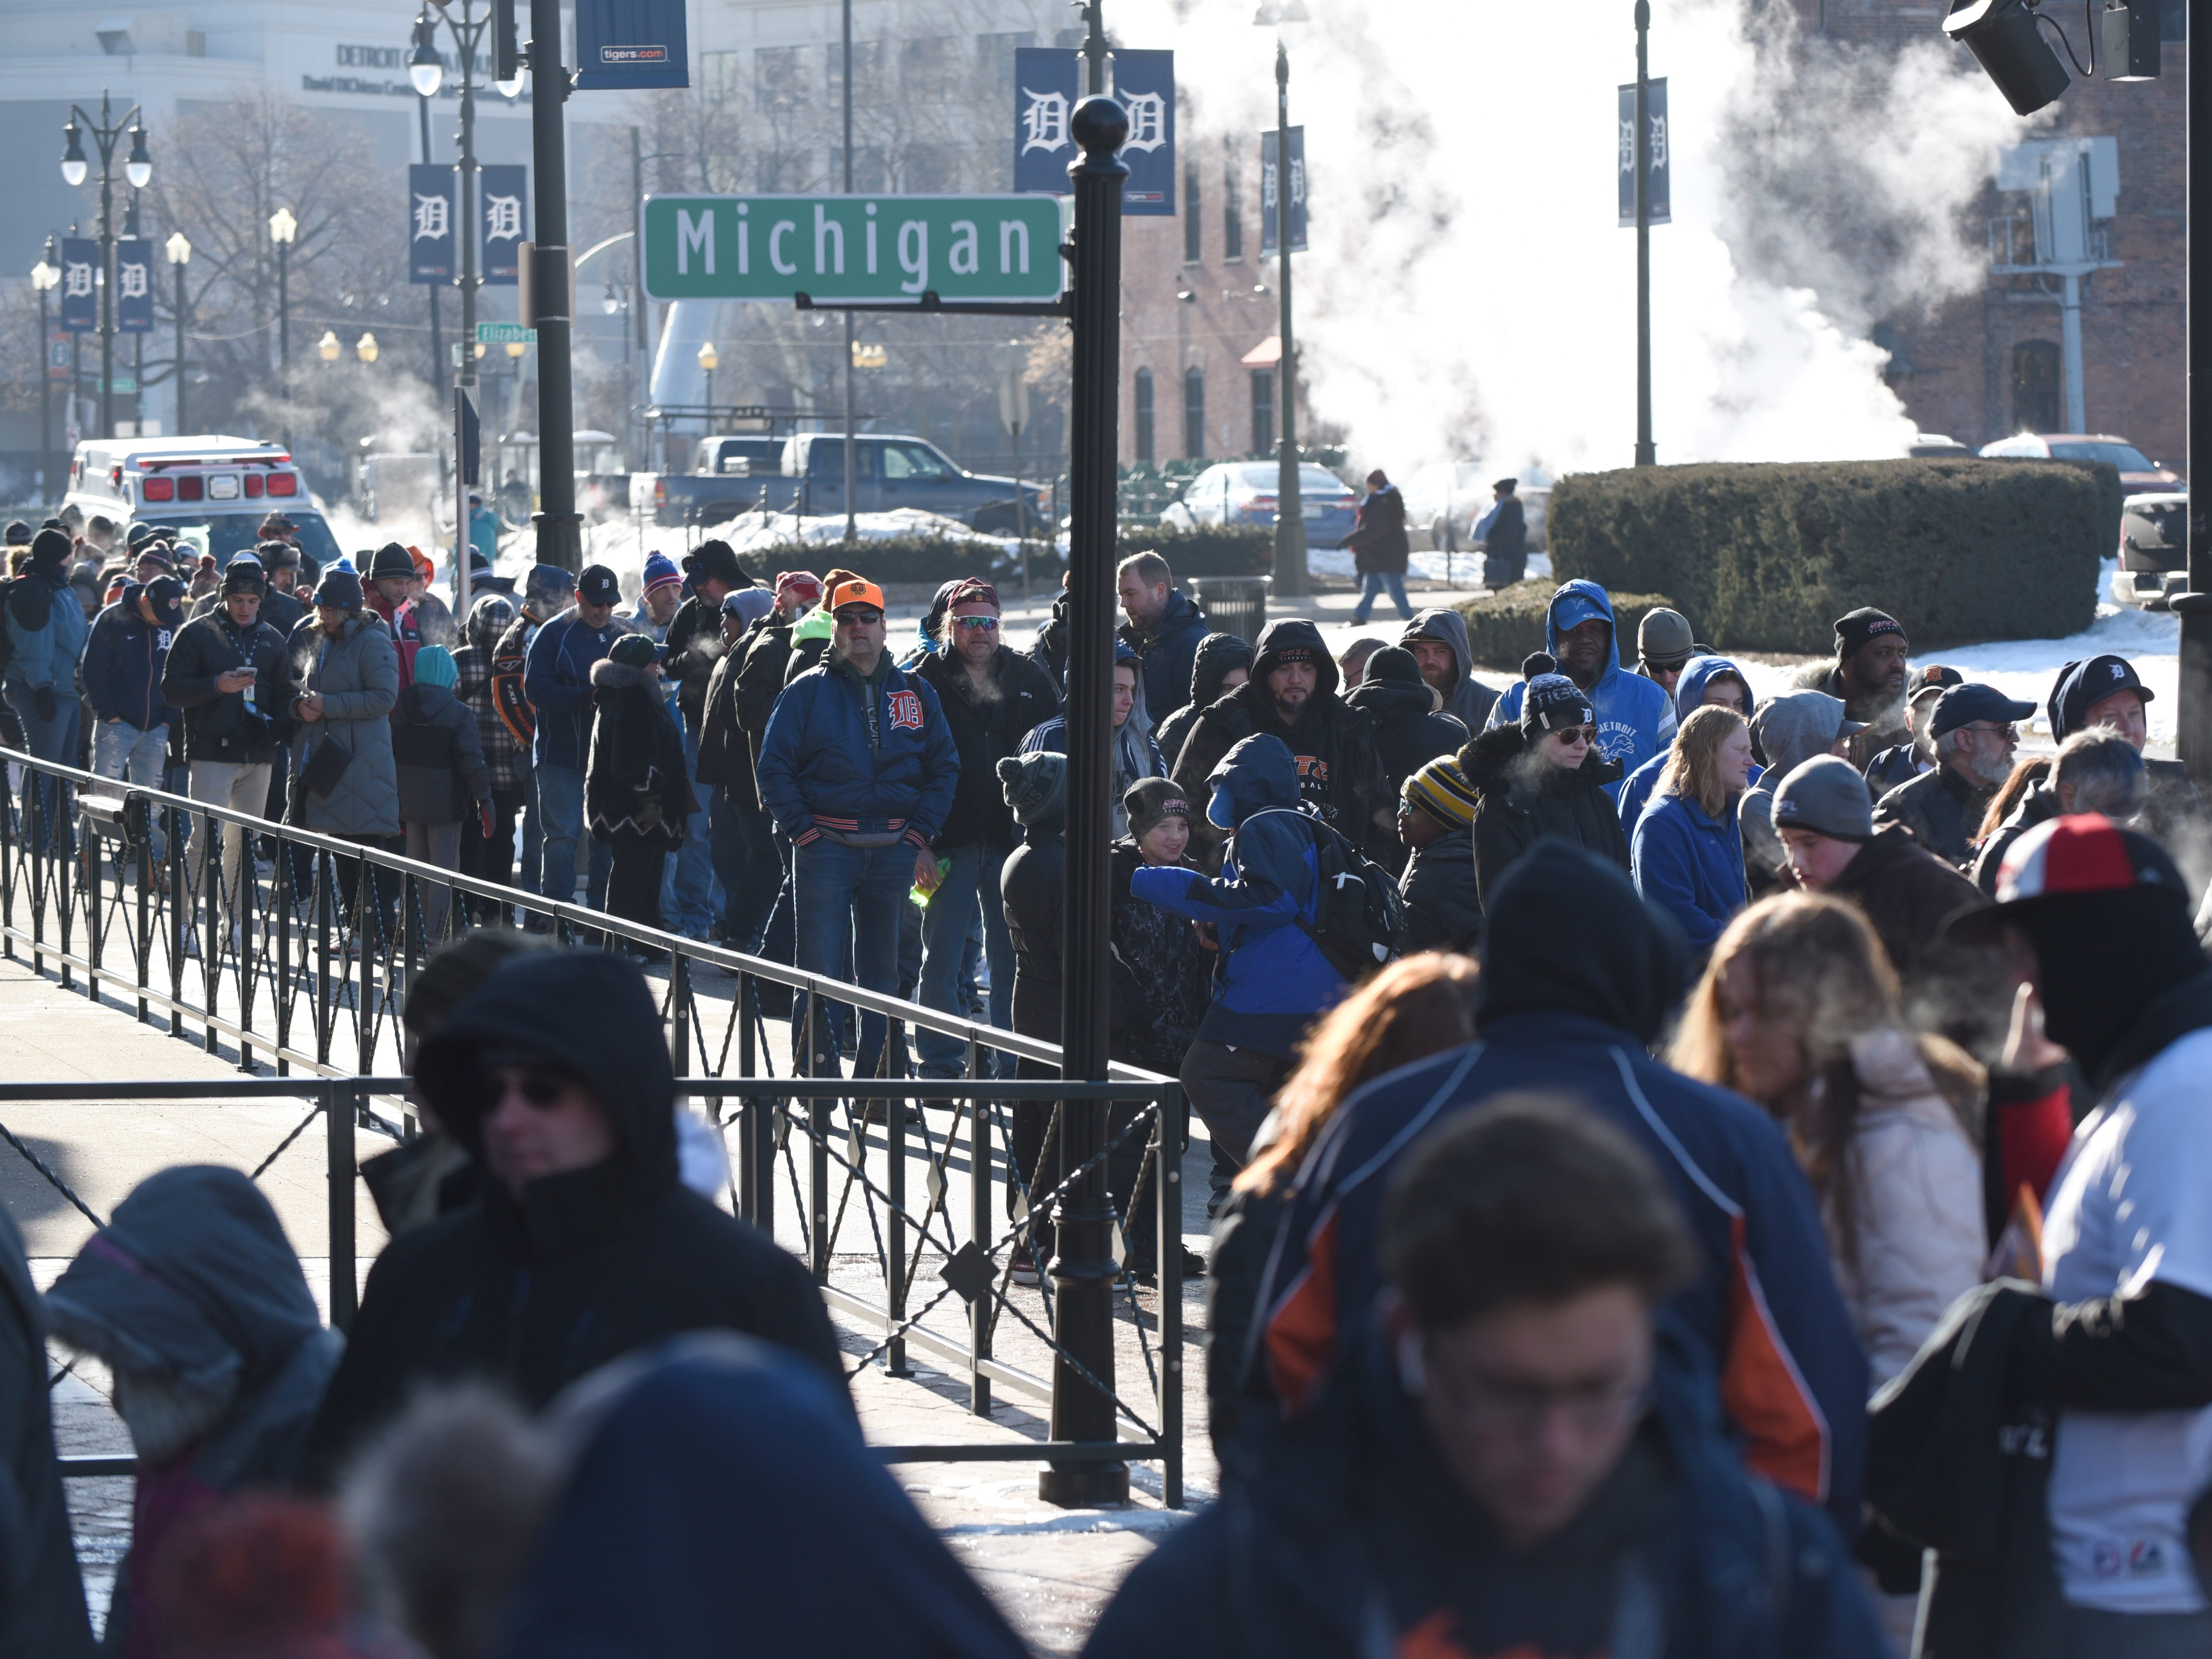 Hundreds line outside Comerica Park for TigerFest on Saturday, January 26, 2019.